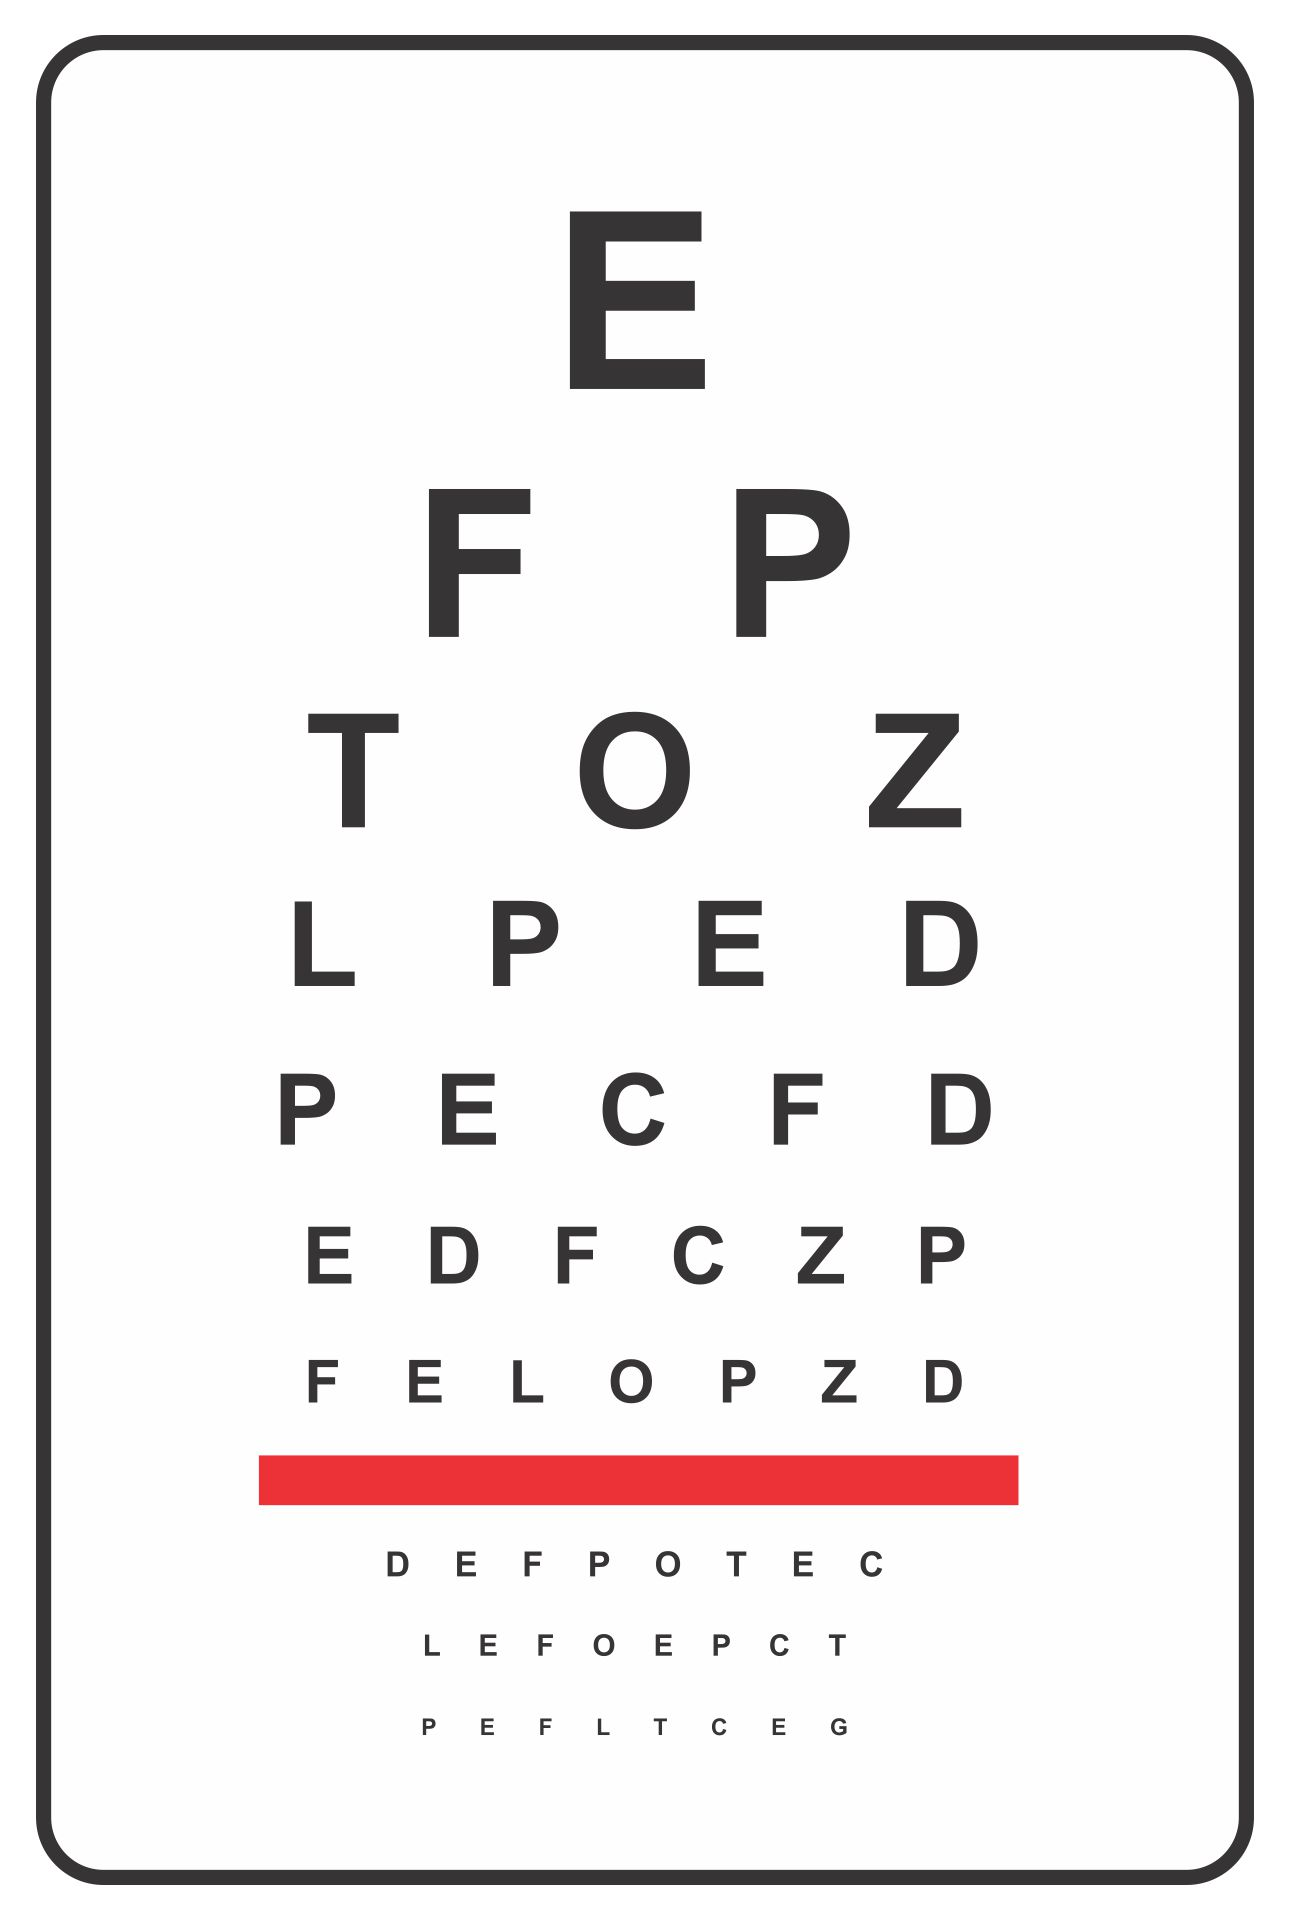 Printable Snellen Visual Acuity Chart